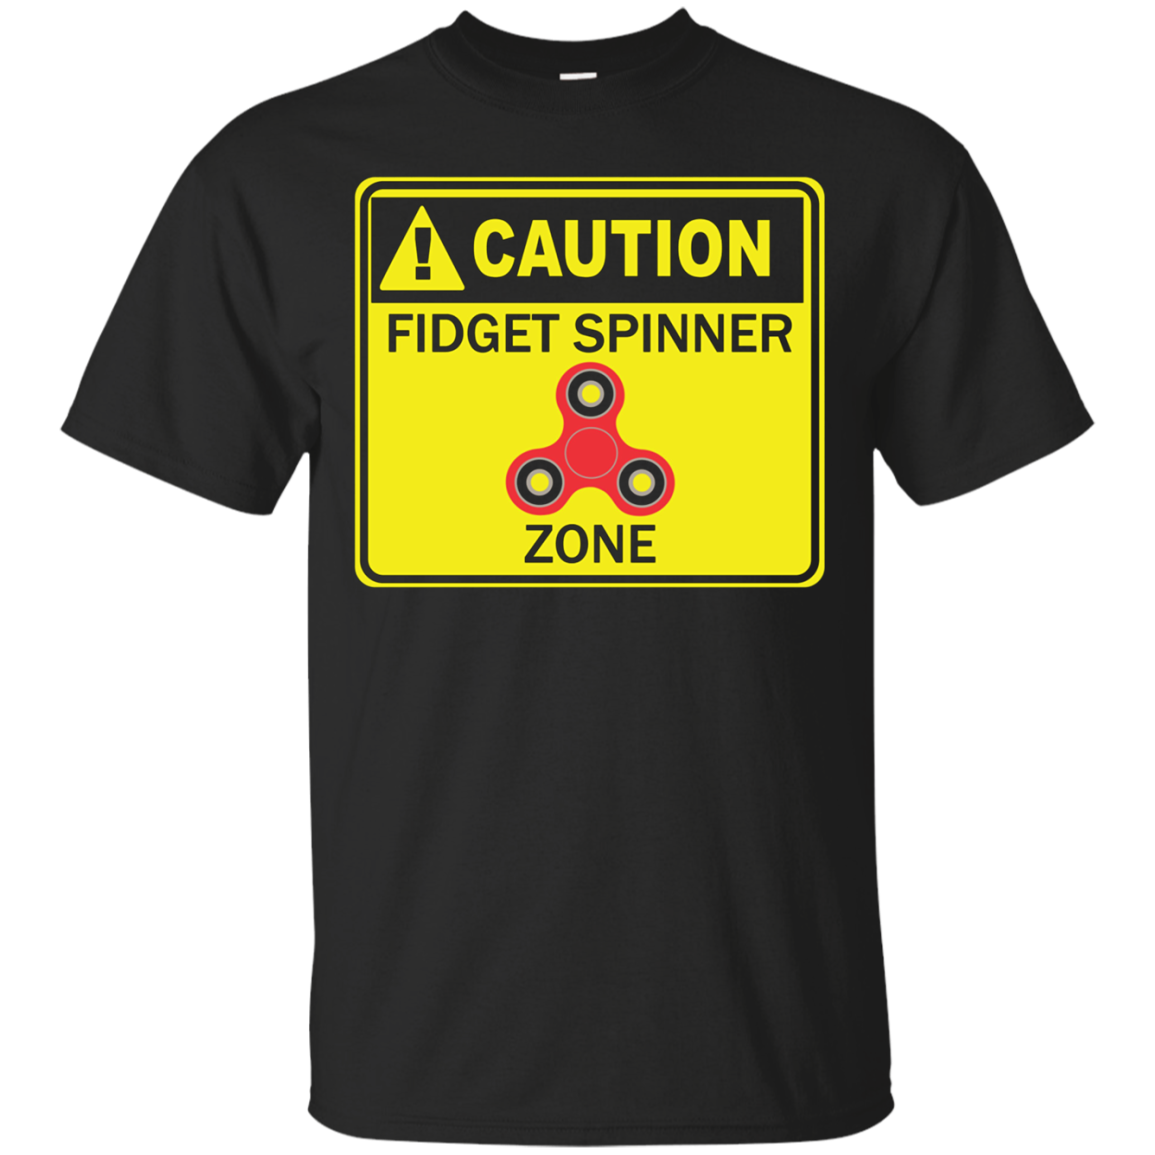 Kids Fidget Spinner Zone Shirt Sign Kids Boys Girls Youth Toy Tee